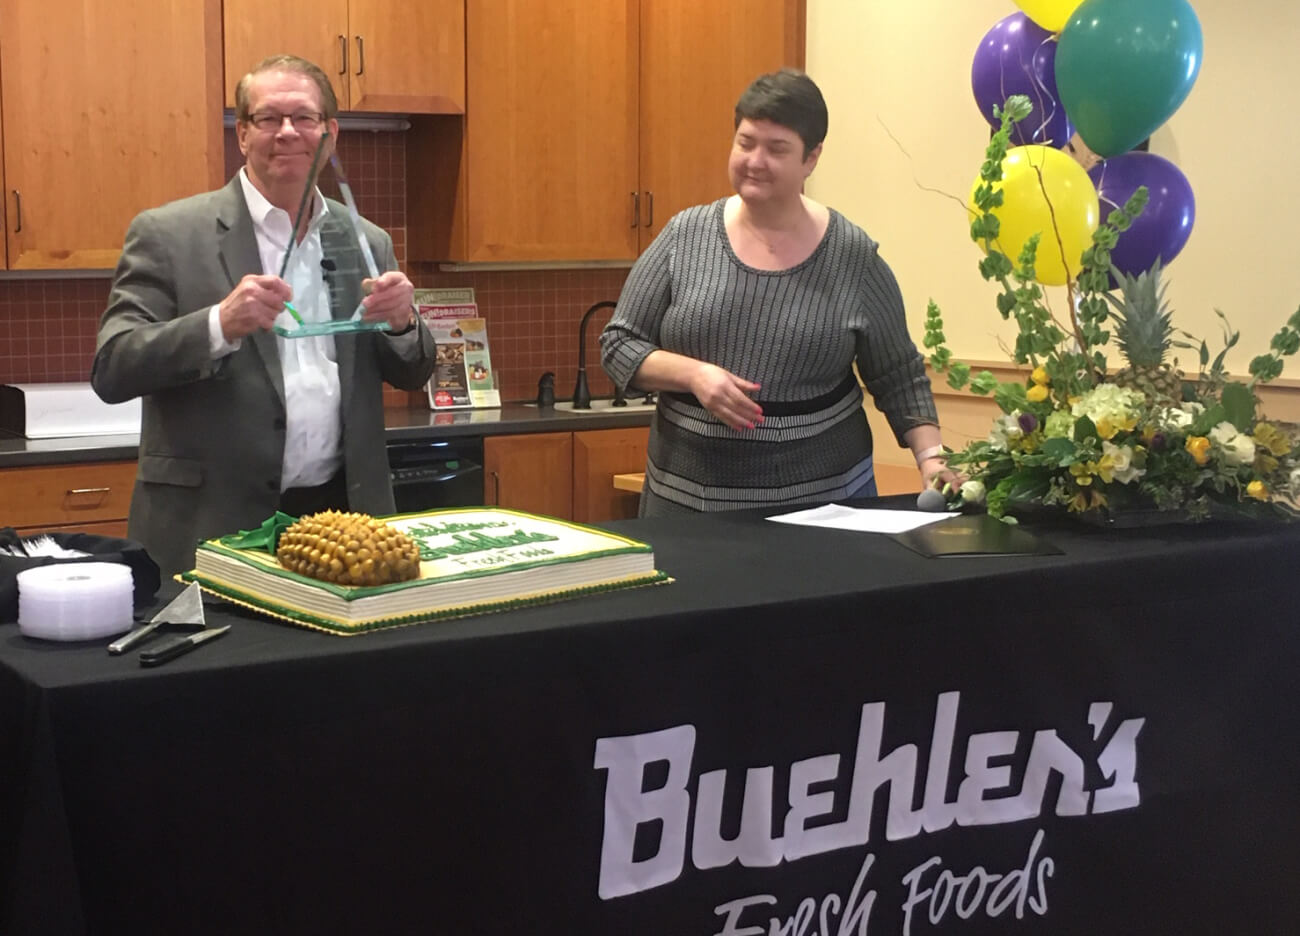 Dan Shanahan receives Pinacle Award for Buehler's